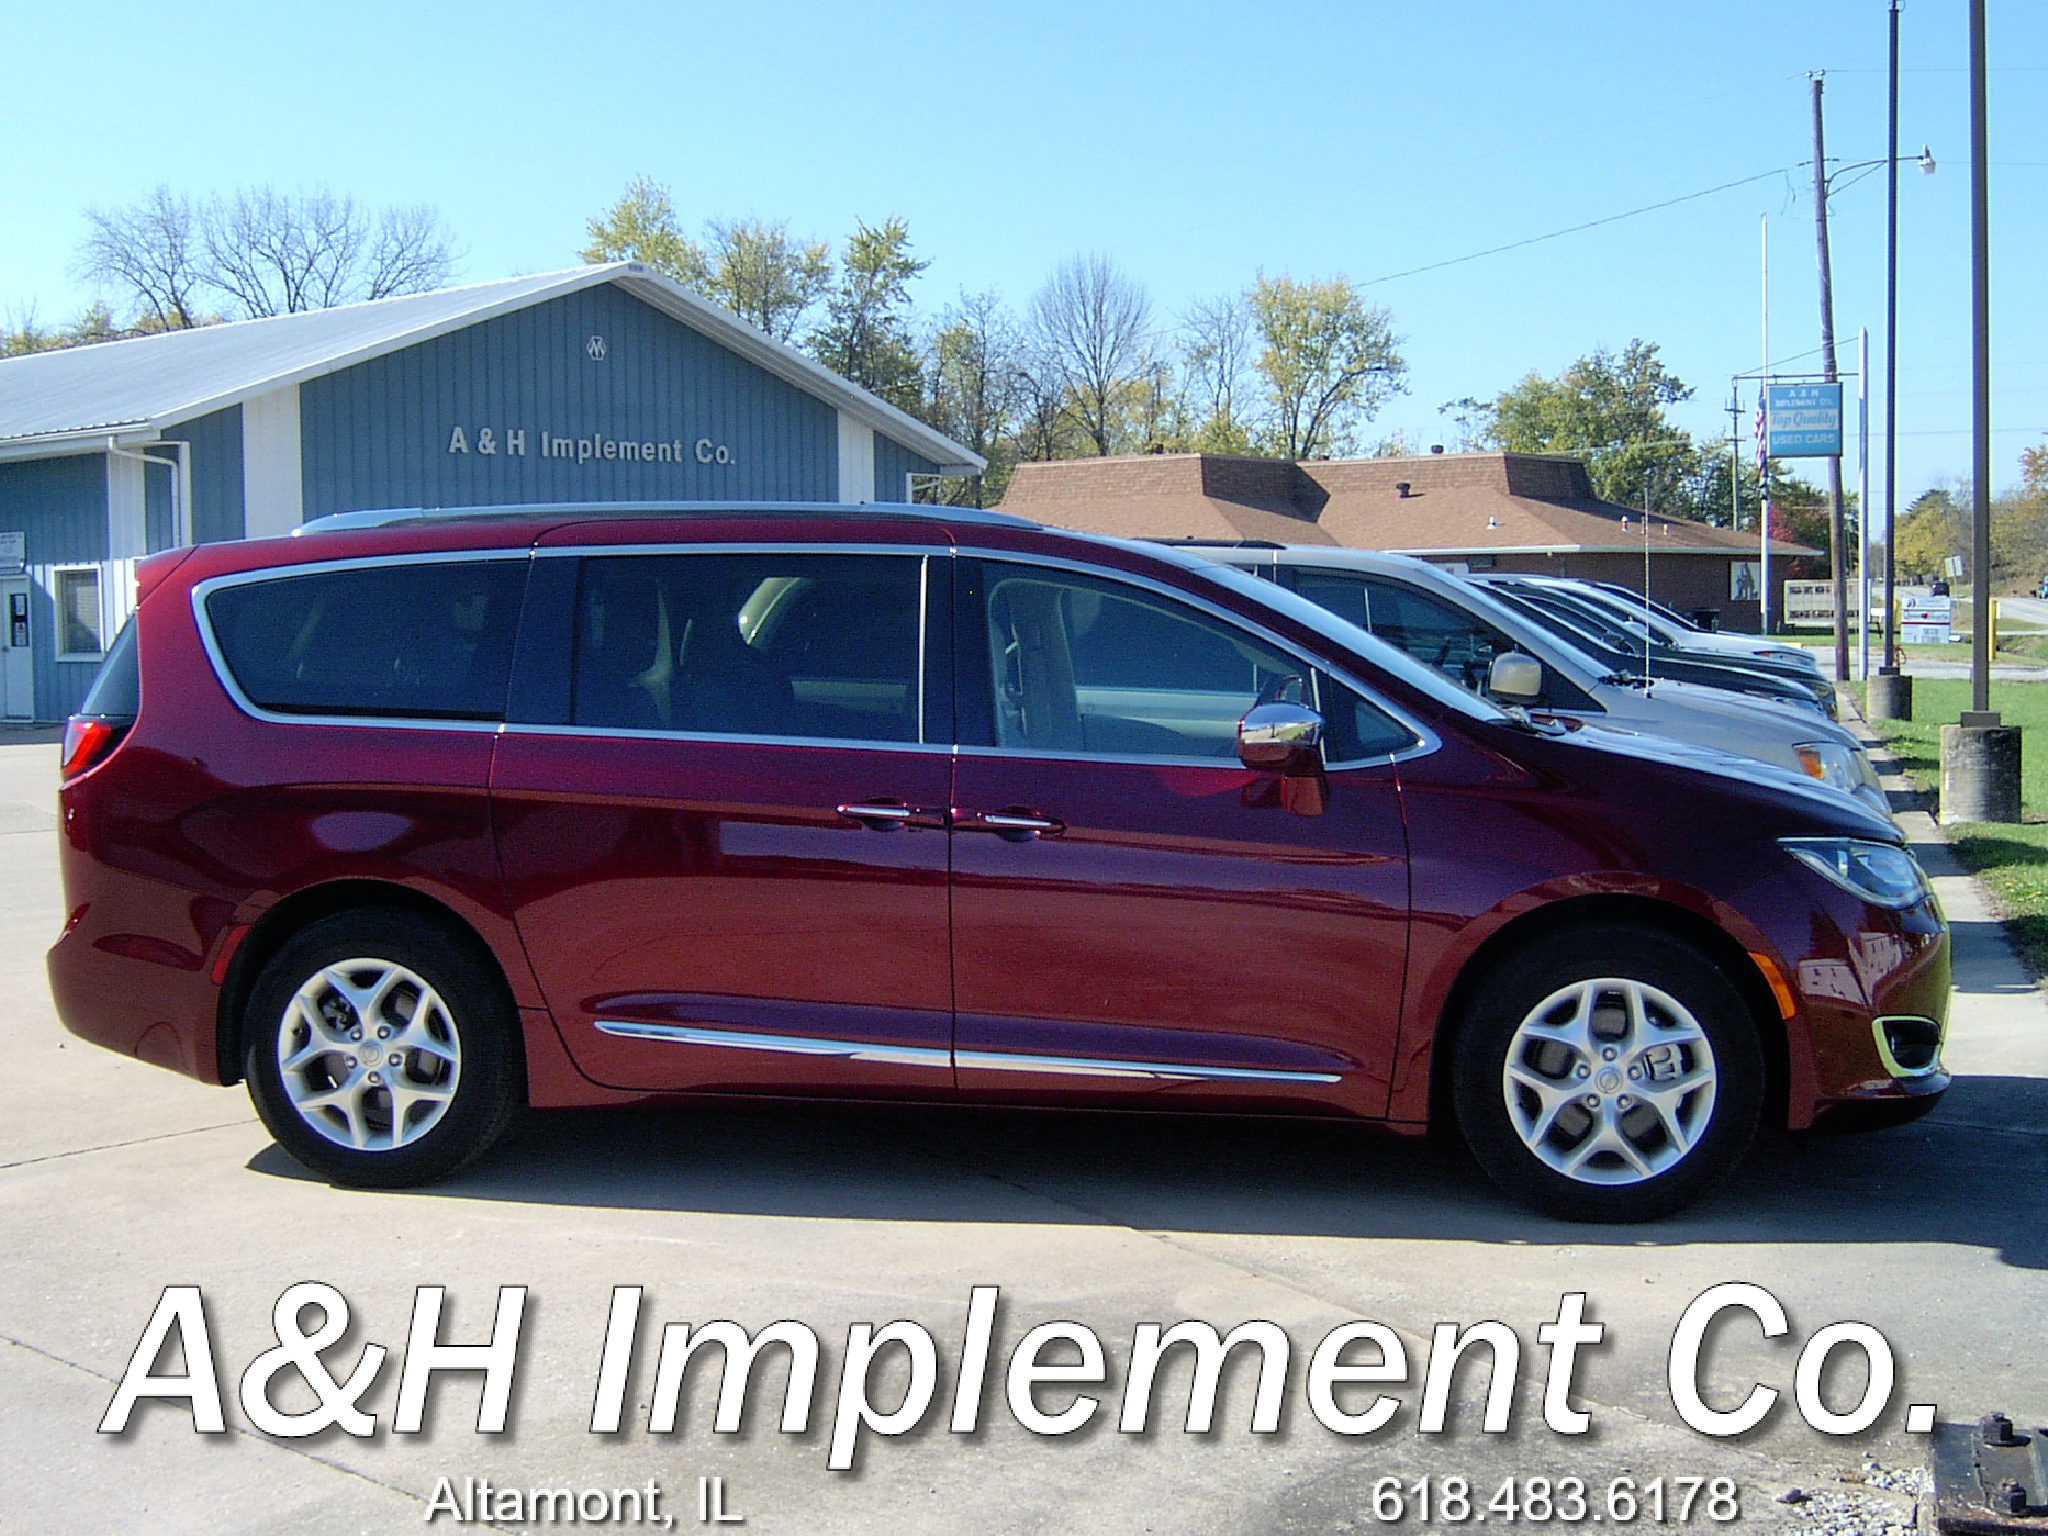 2020 Chrysler Pacifica Limited - Red 1